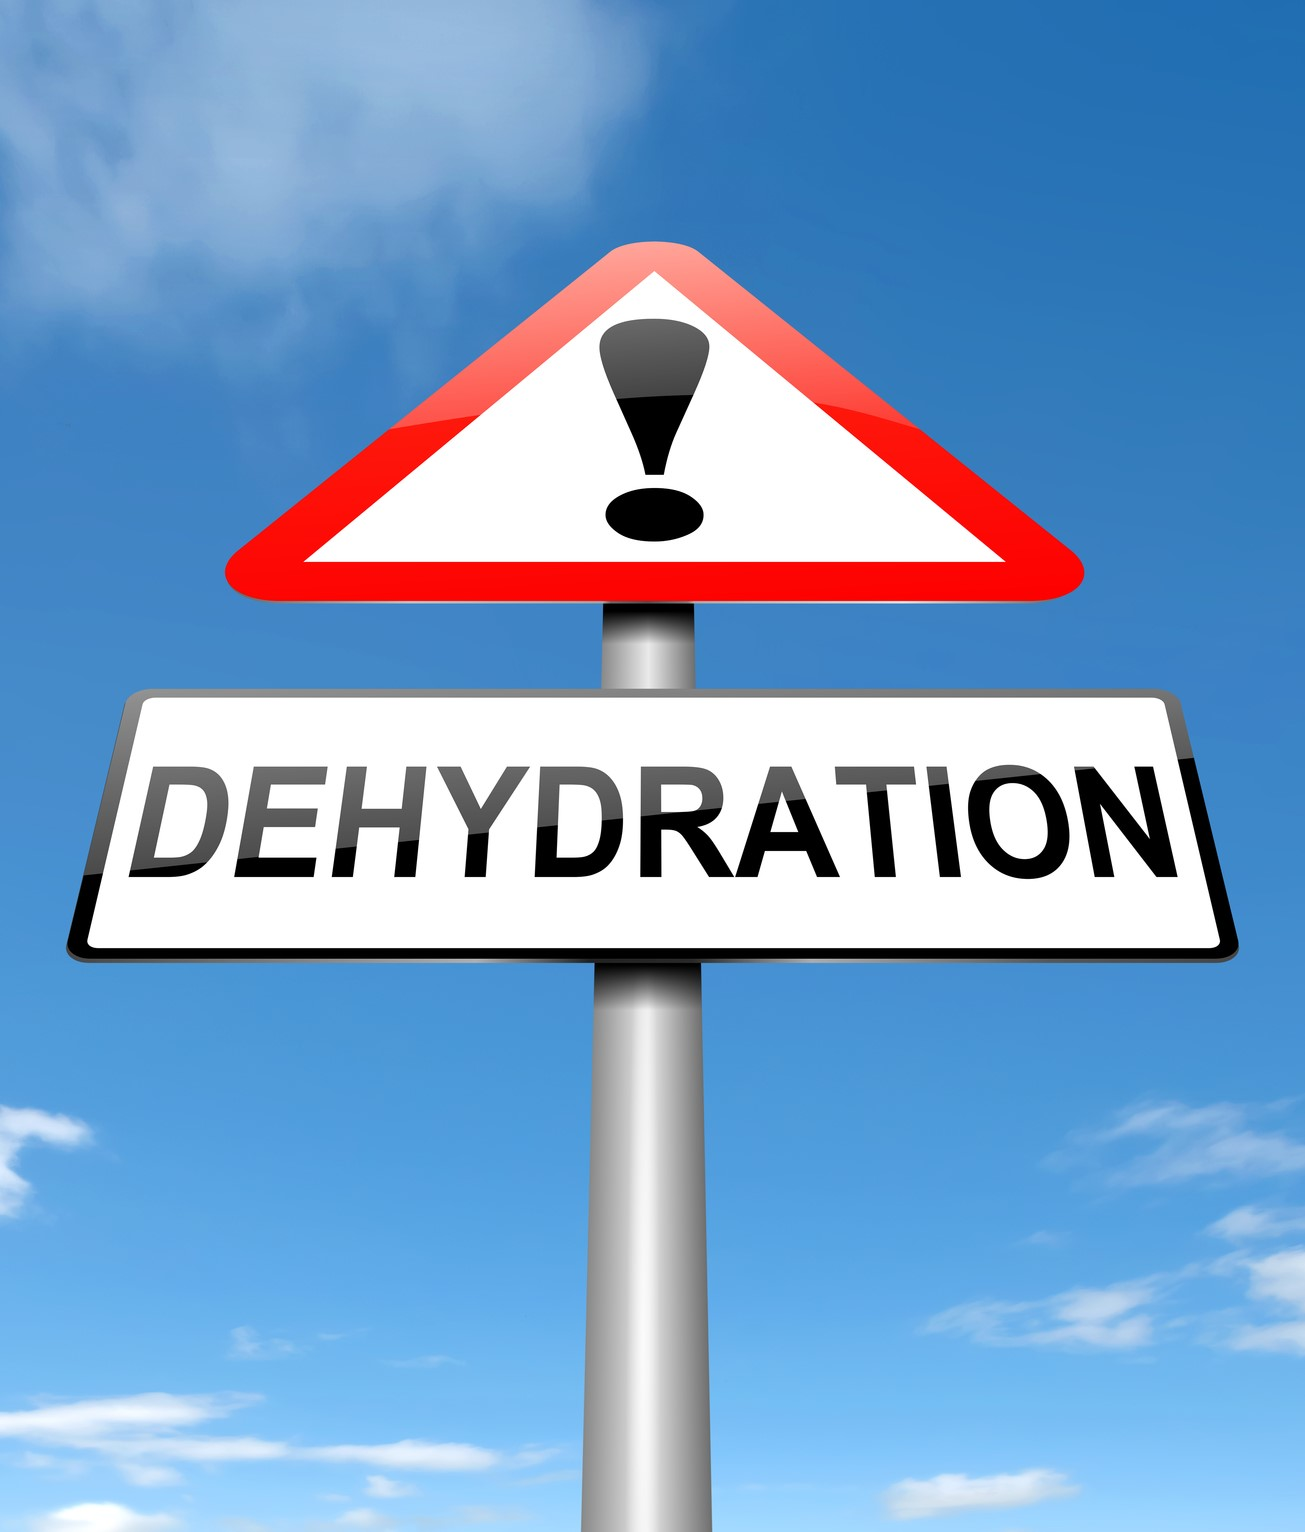 dehydration warning